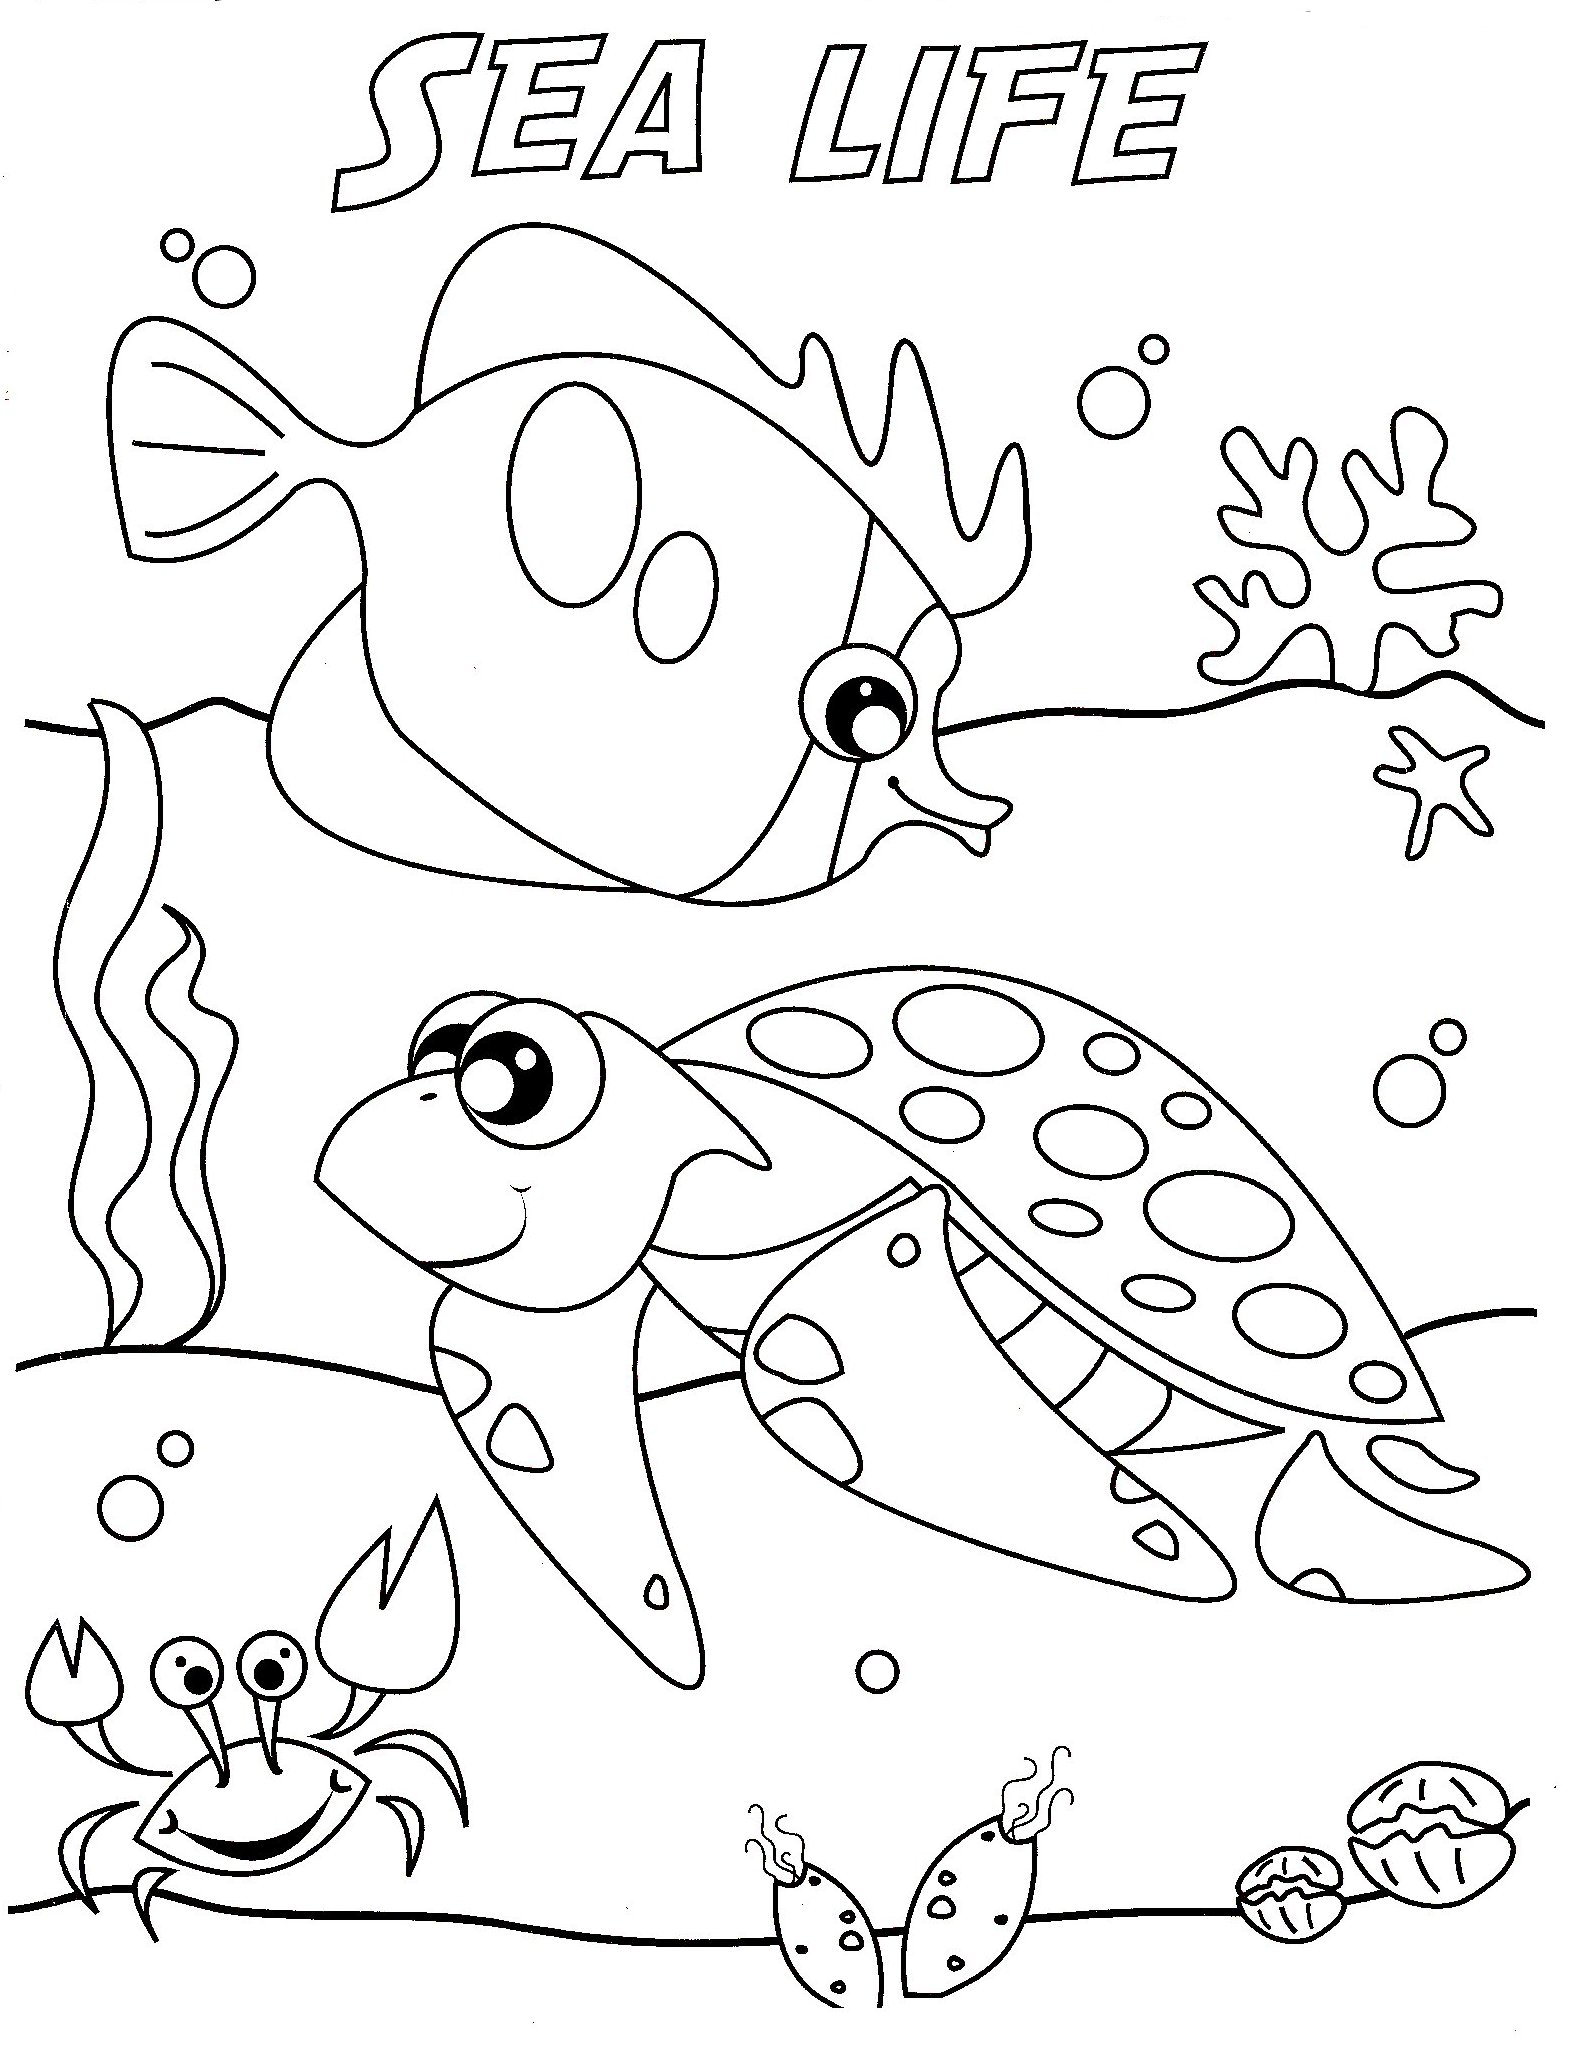 uner the sea coloring pages - photo#6